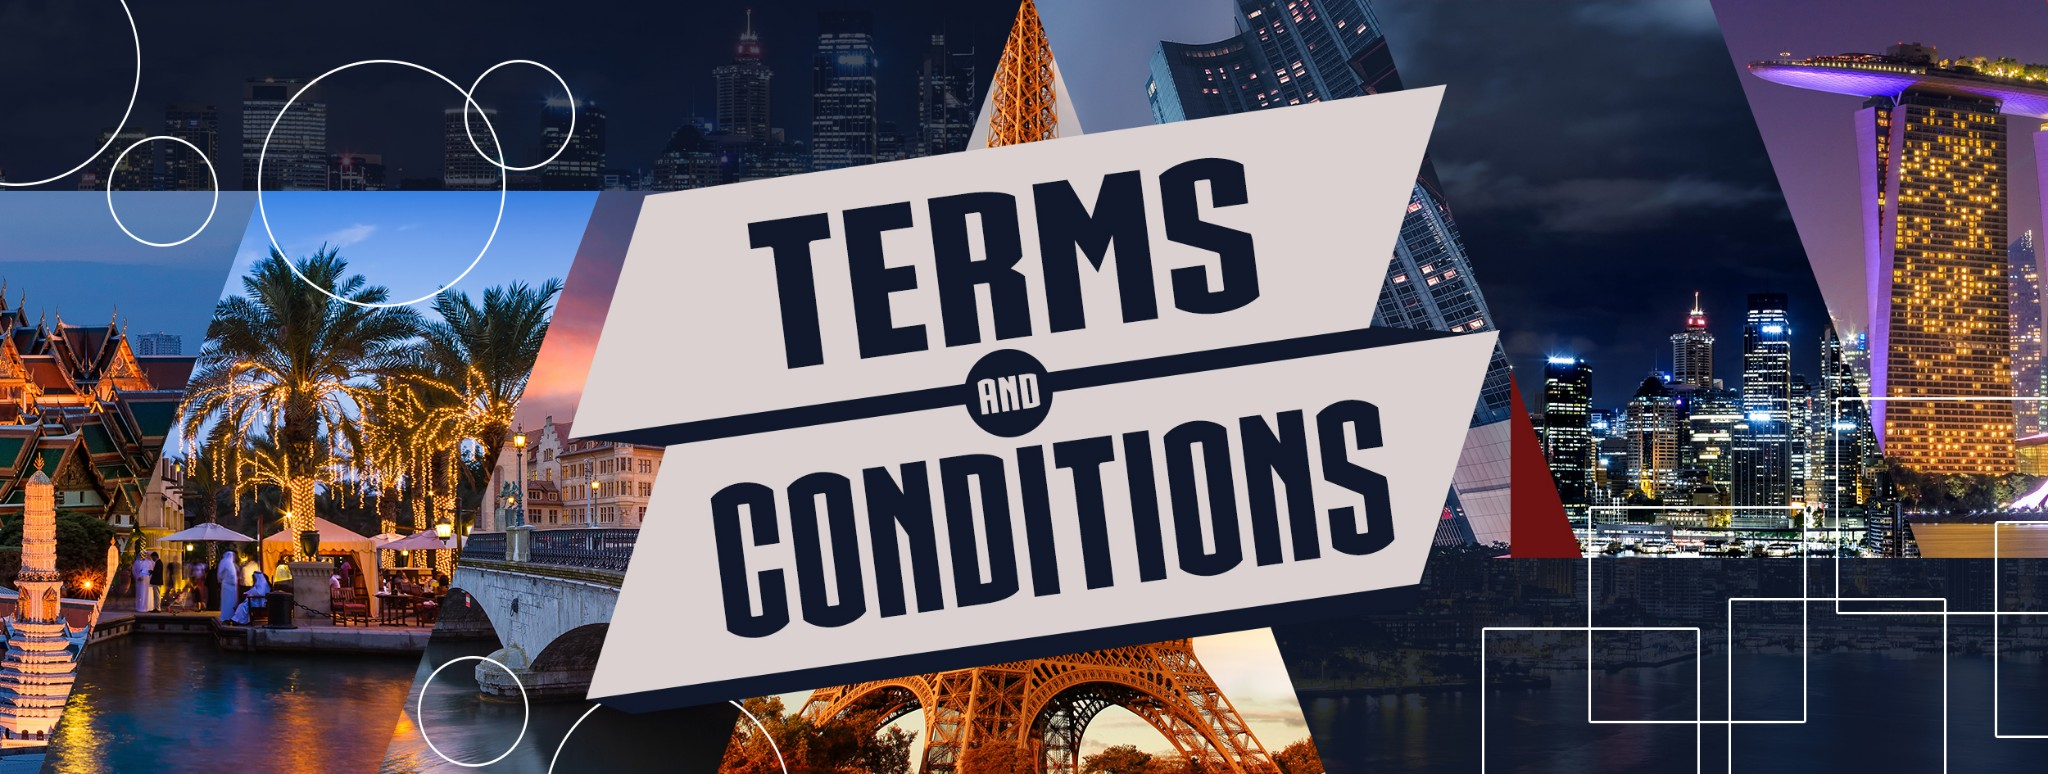 Terms and Conditions for the Agency